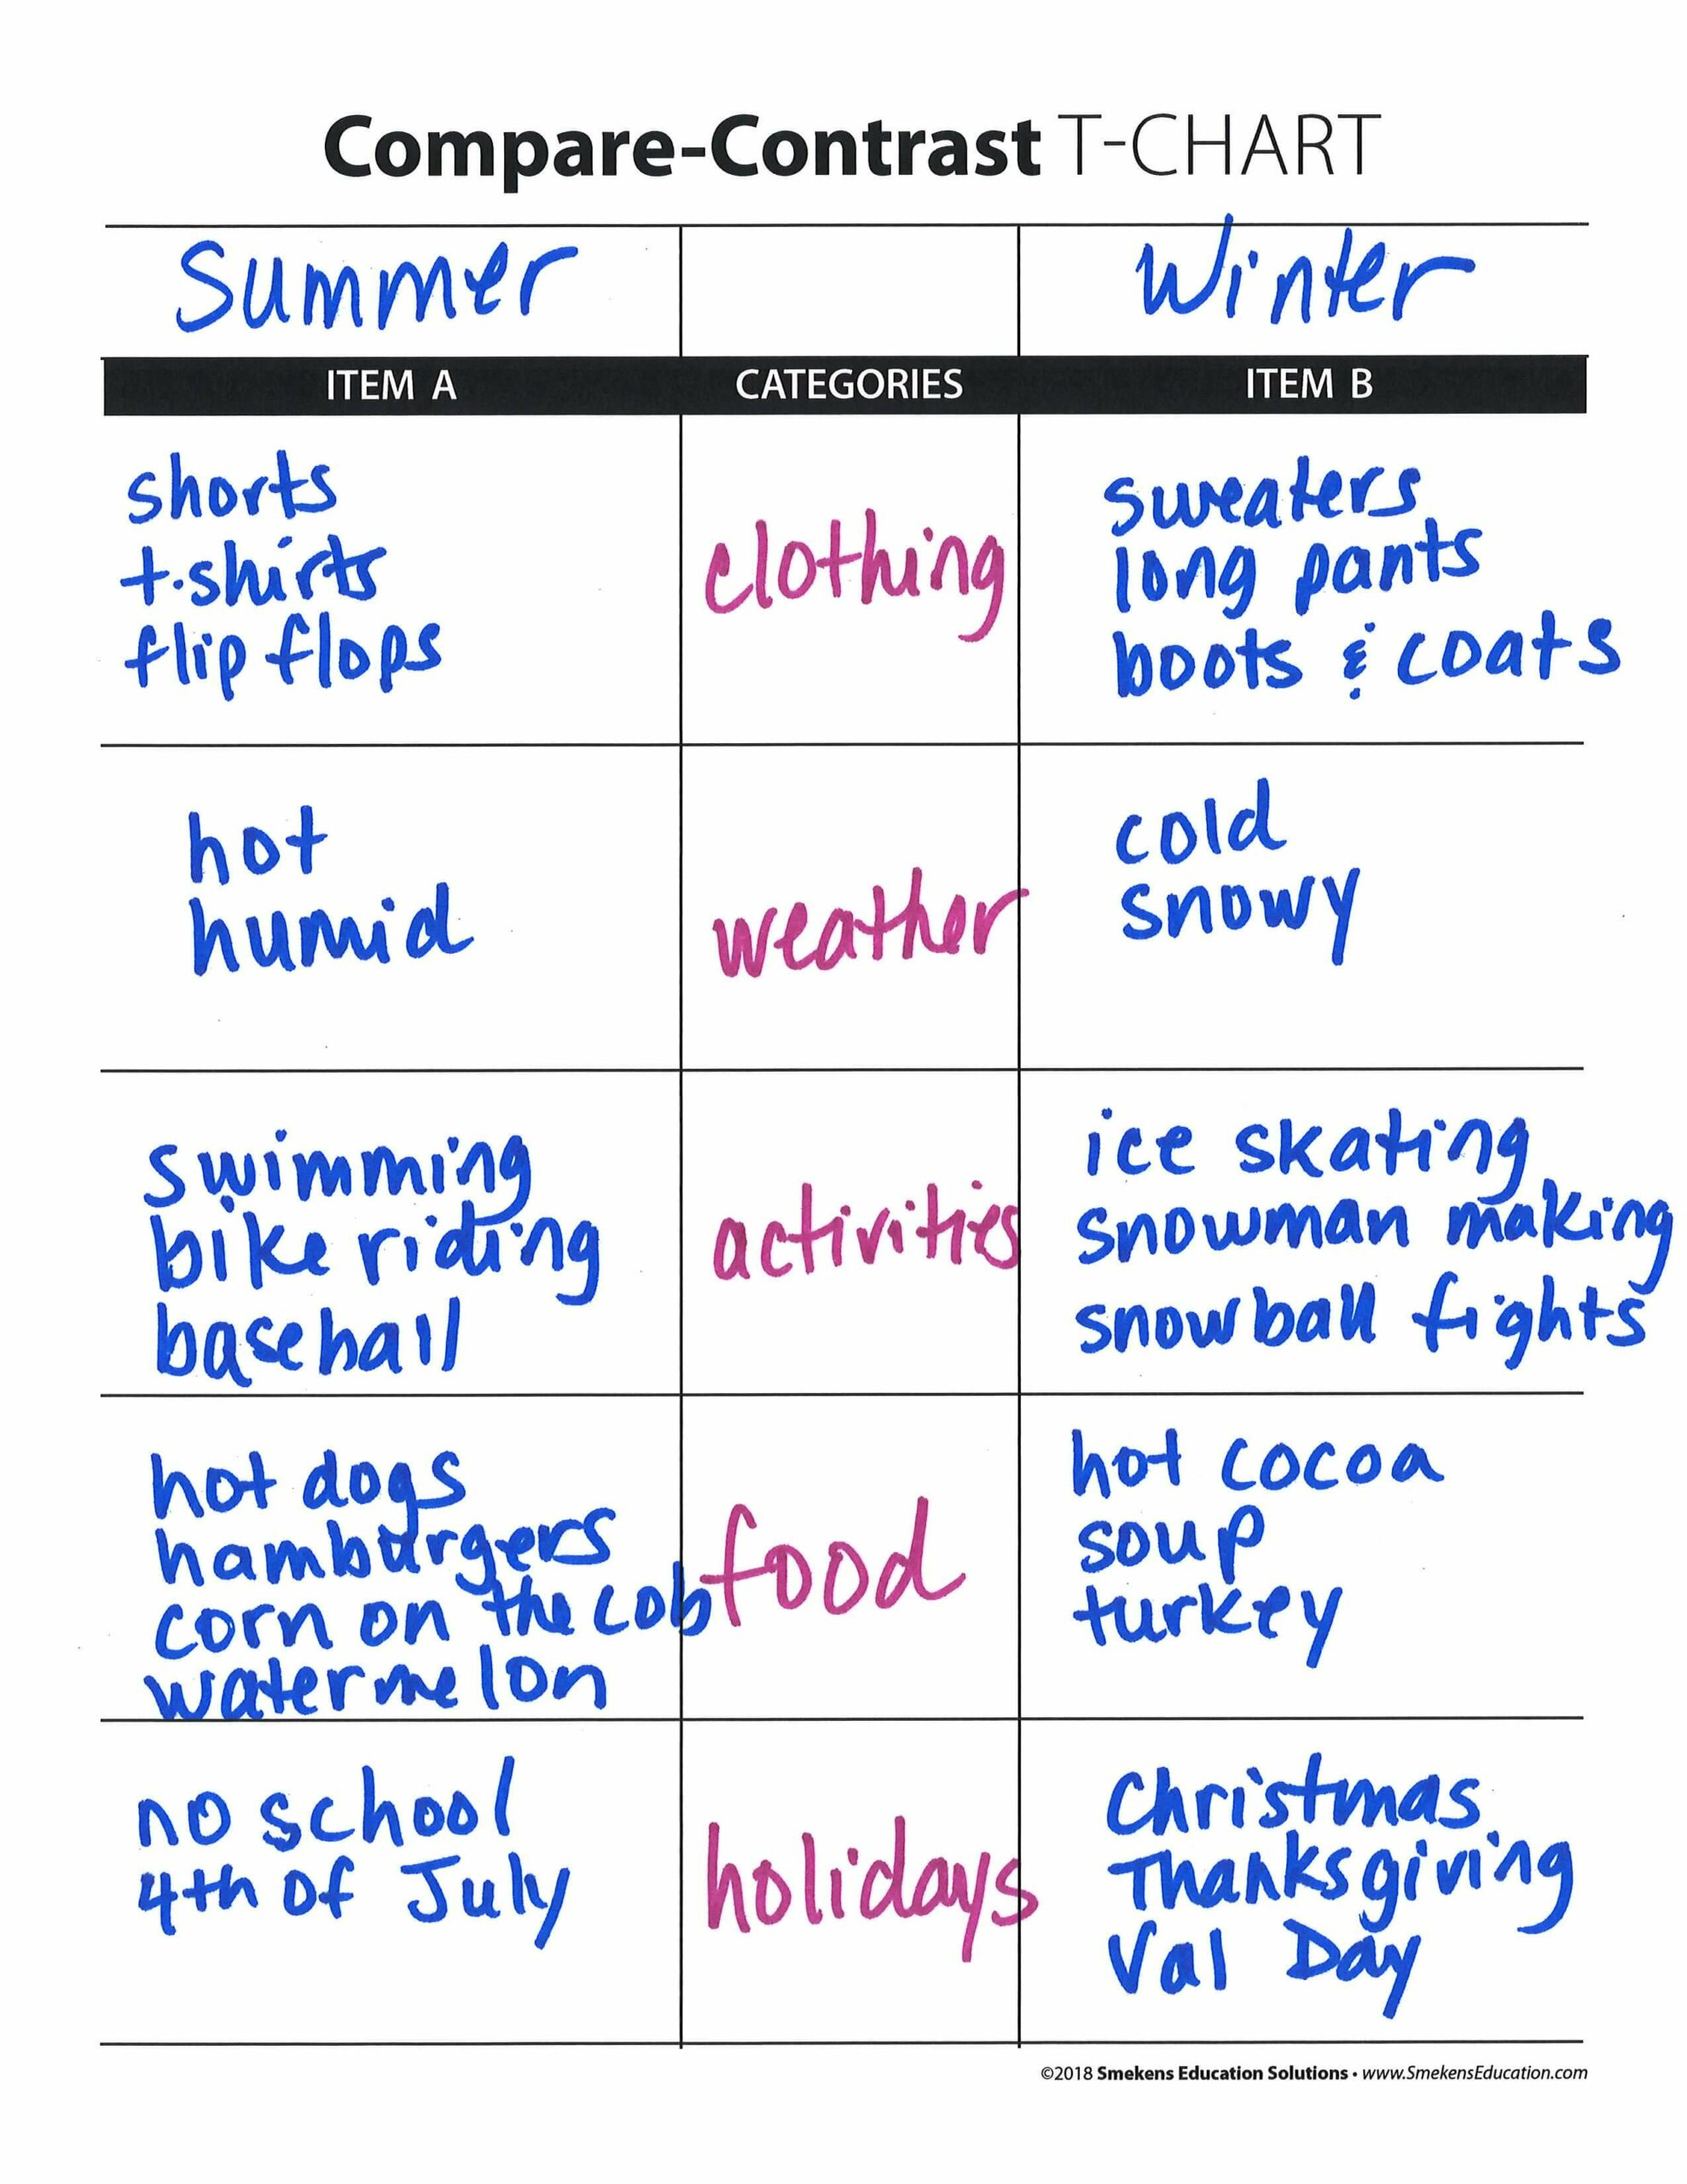 Compare-Contrast T-Chart - Summer v Winter with 5 Categories